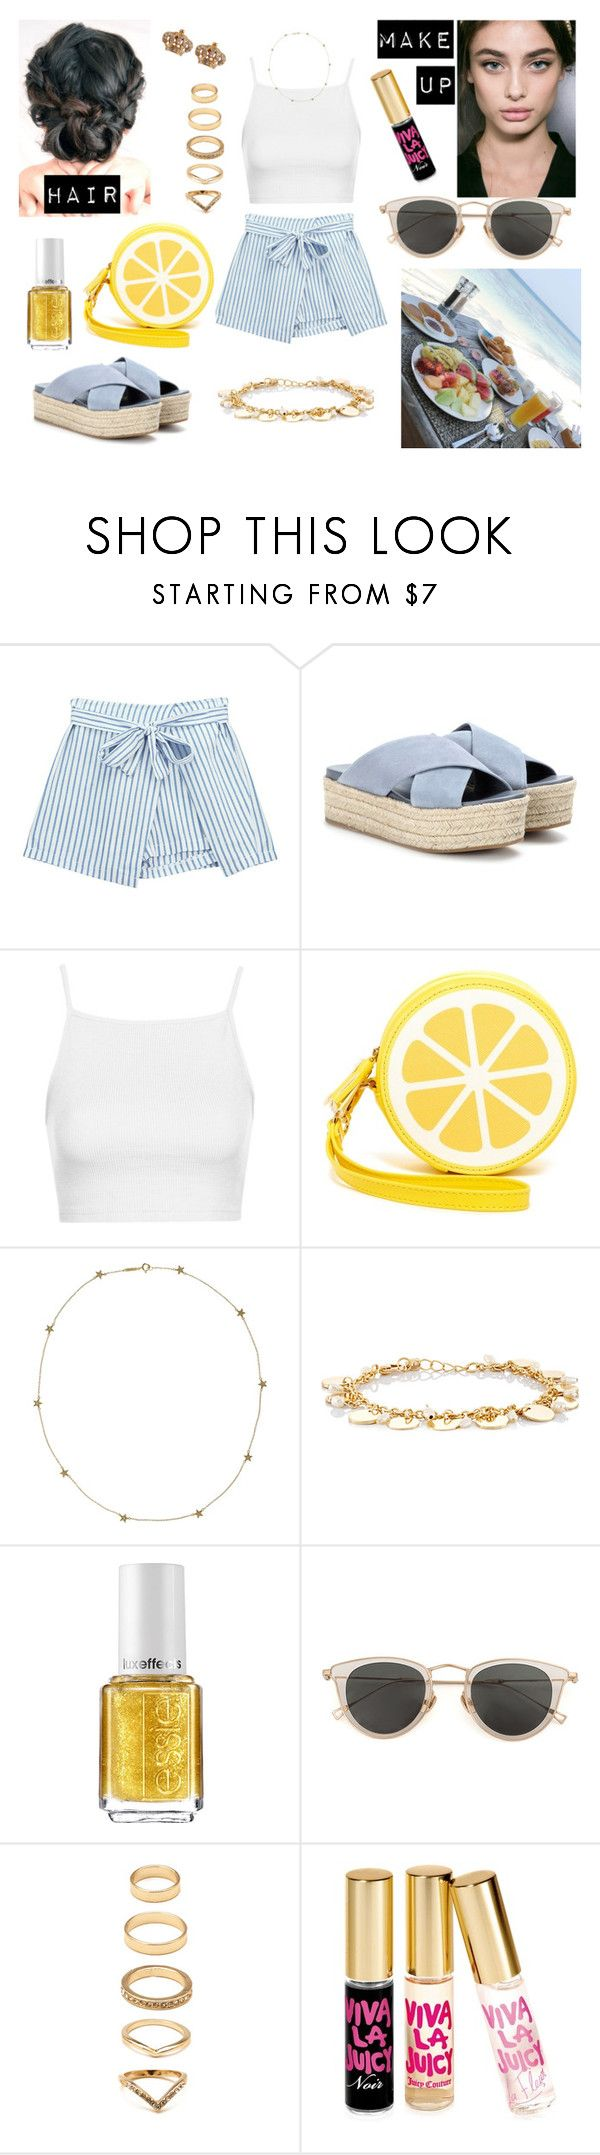 """""""🍌🍞 Breakfast On The Beach! 🌴🌊"""" by milena-serranista ❤ liked on Polyvore featuring Chicnova Fashion, Miu Miu, Topshop, Shiraleah, Jennifer Meyer Jewelry, Ettika, Essie, Issey Miyake, Forever 21 and Juicy Couture"""